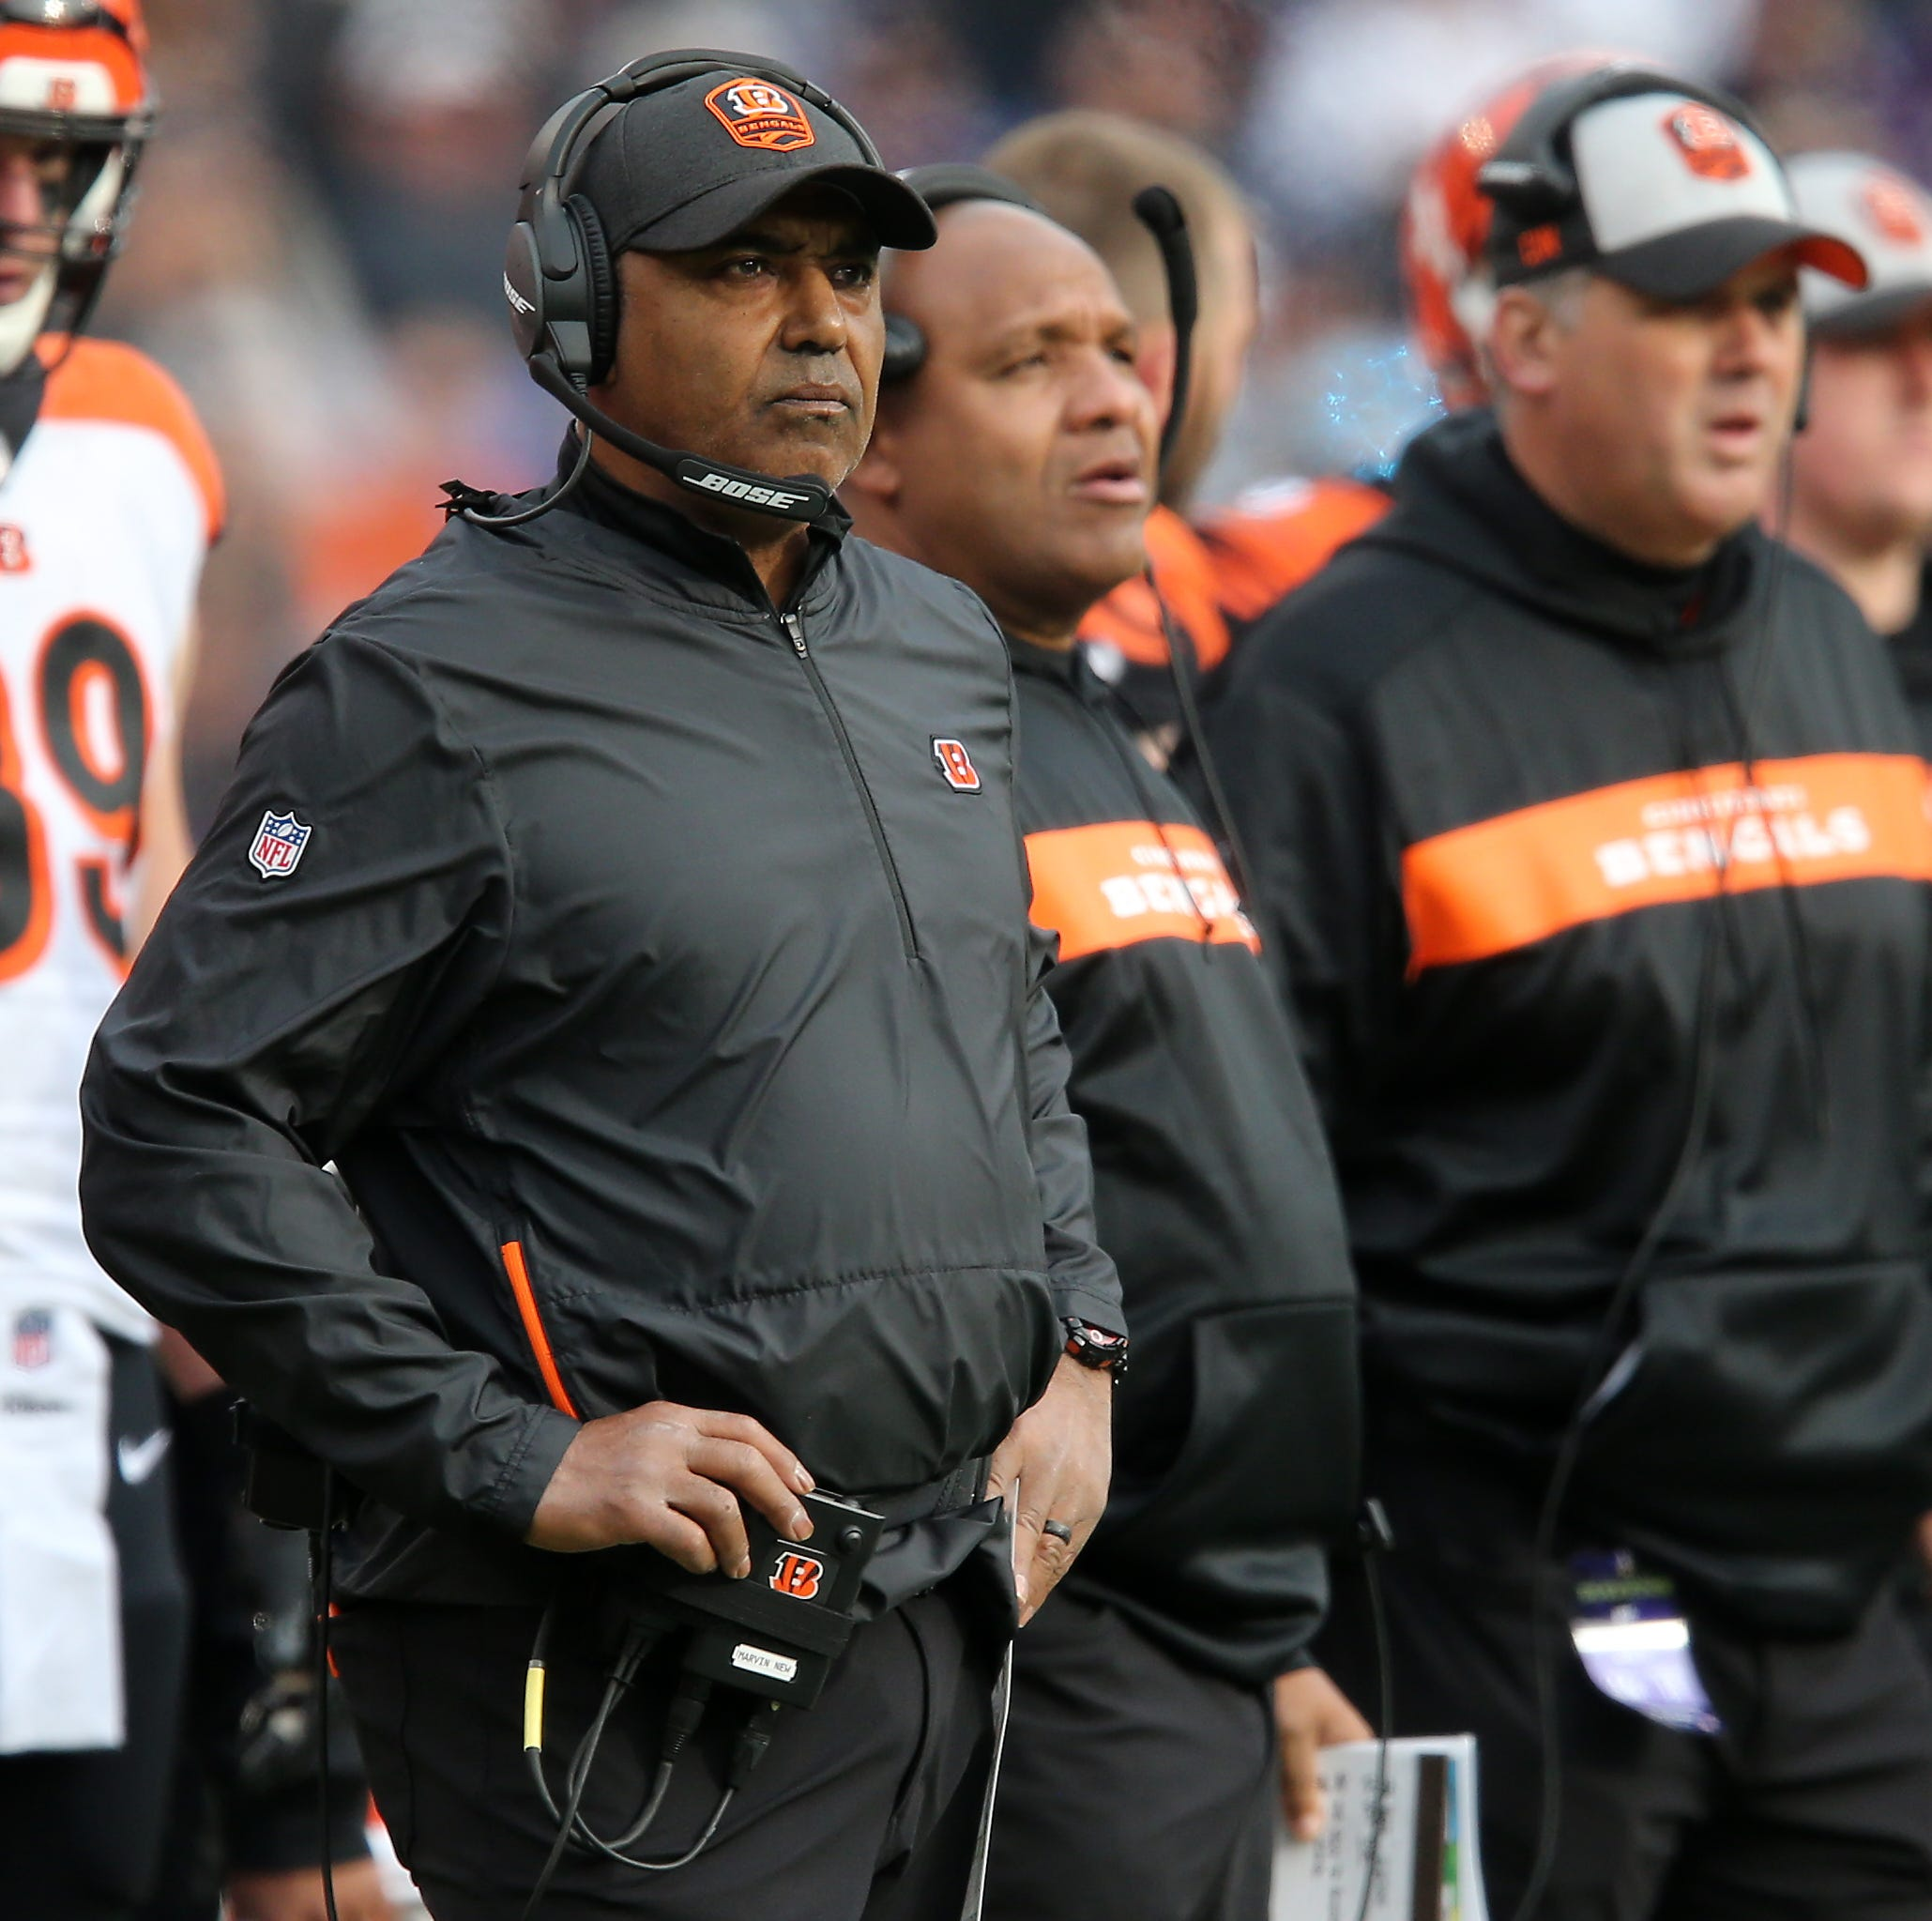 Cleveland Browns: Having Hue Jackson doesn't give Cincinnati Bengals an advantage